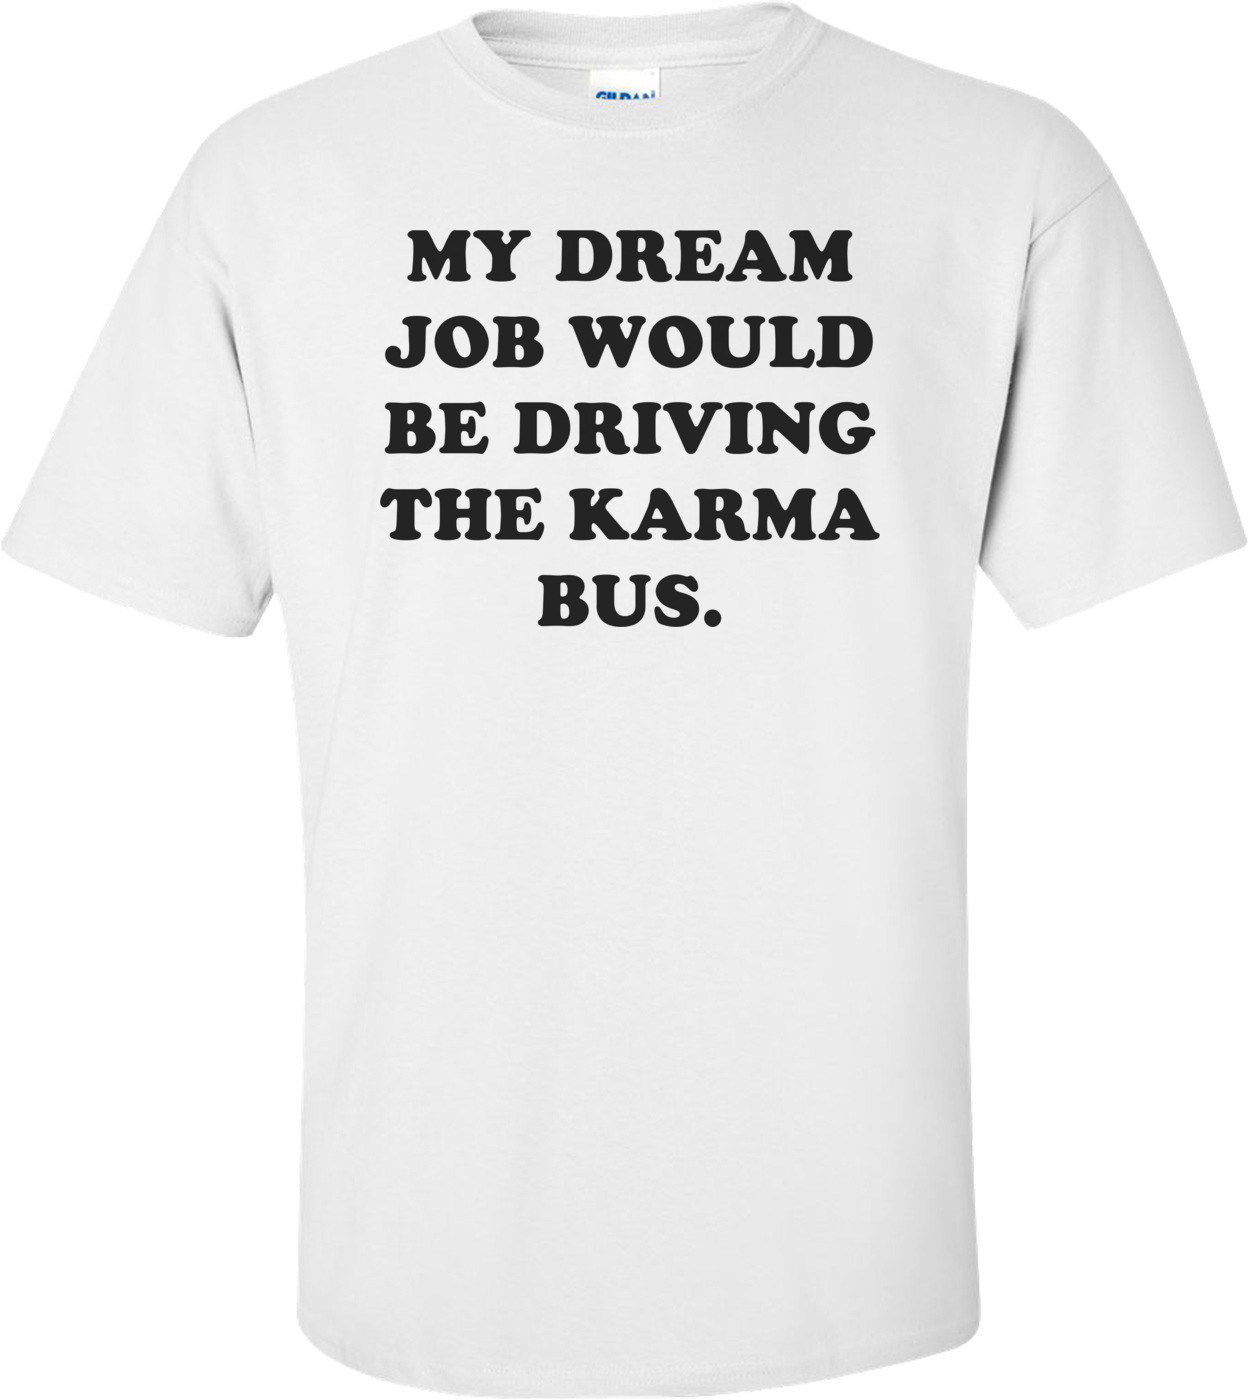 MY DREAM JOB WOULD BE DRIVING THE KARMA BUS. Shirt